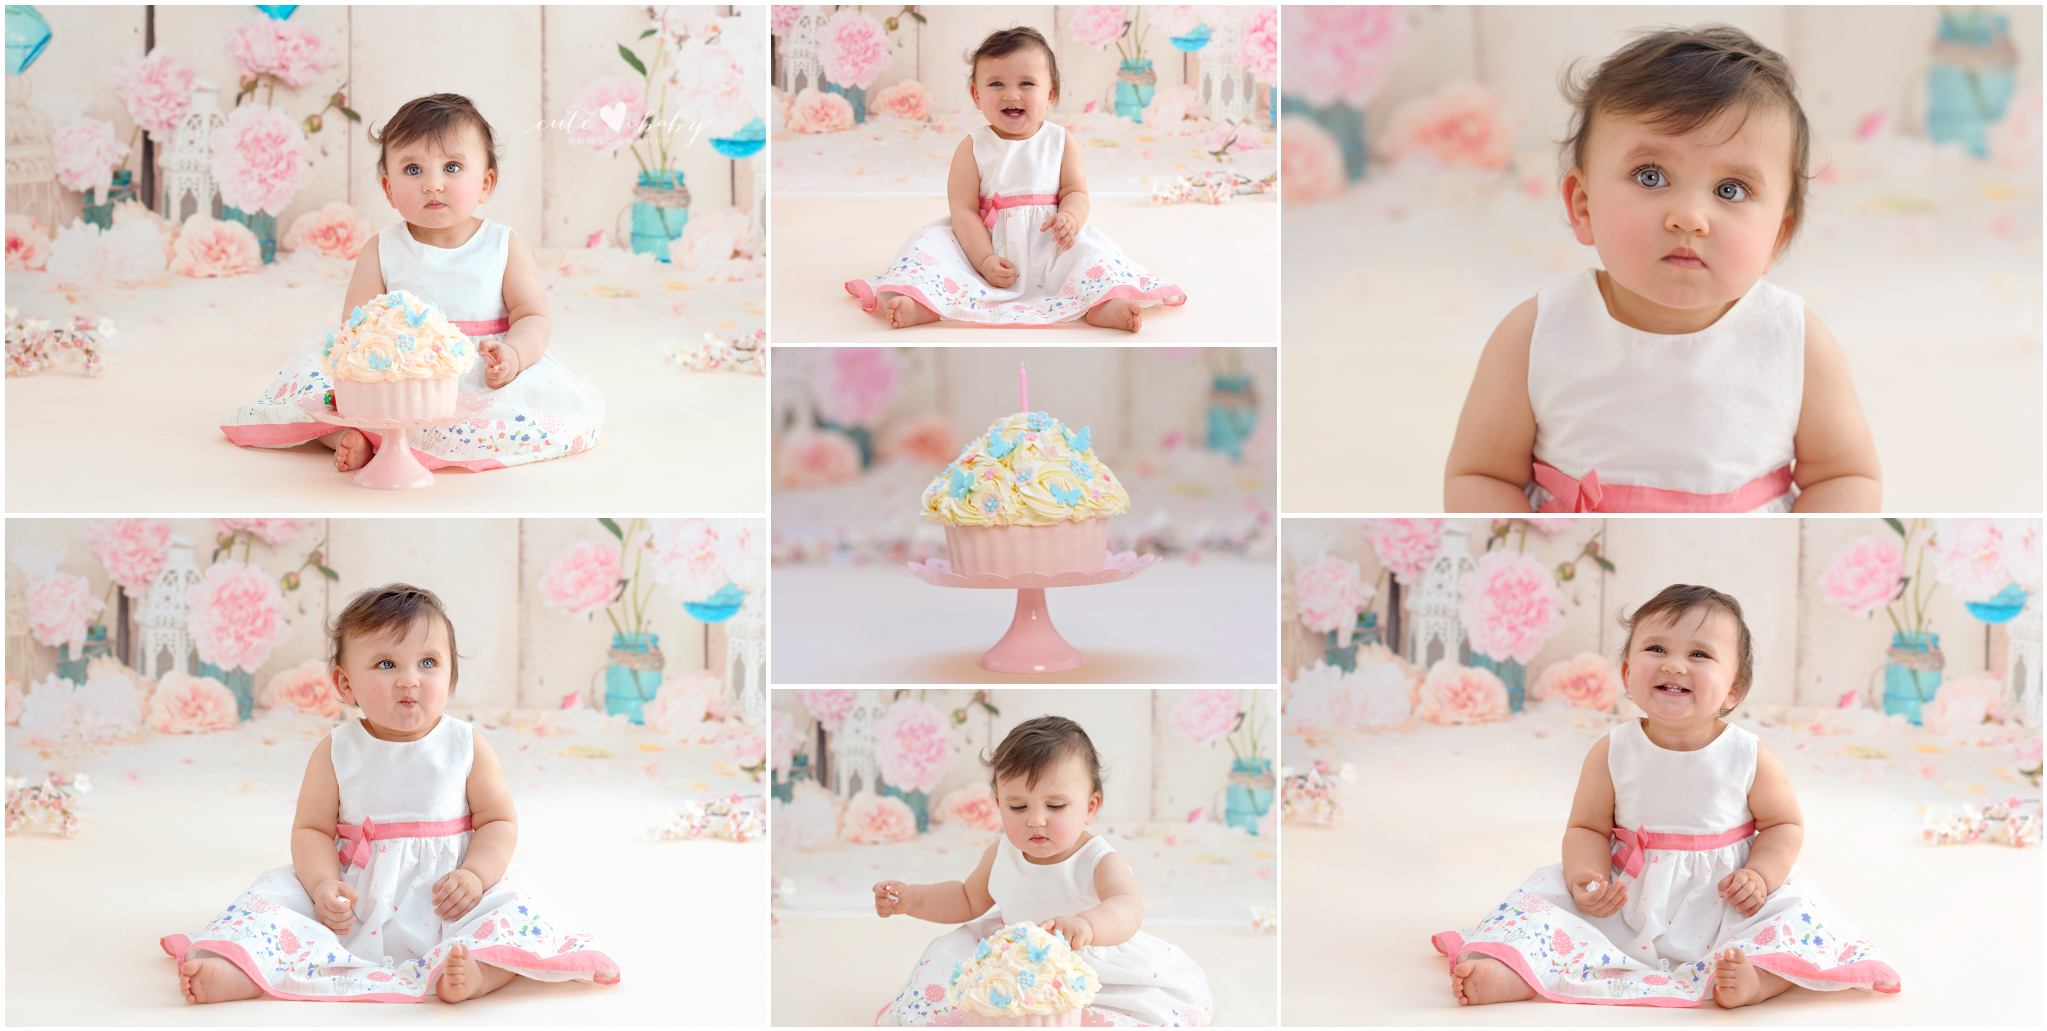 cutebabyphotography, manchester newborn photography, newborn photography, atgancarz photography, cake smash photography Manchester